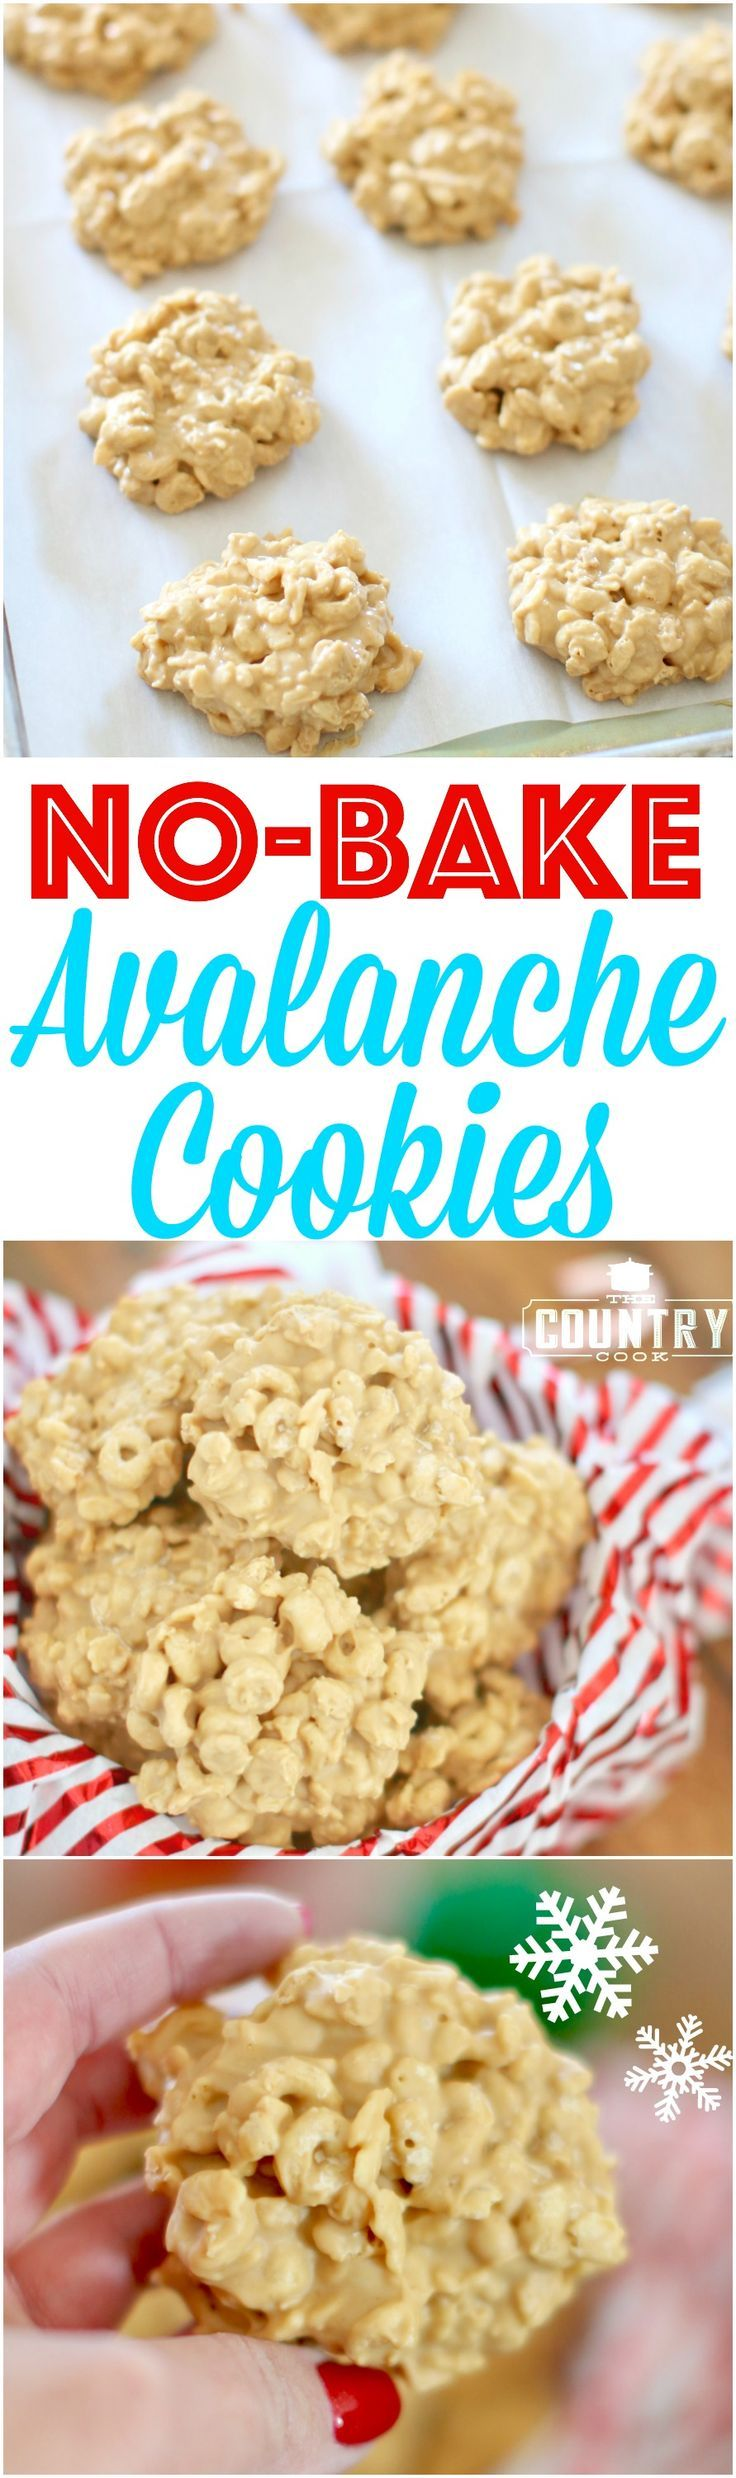 No-Bake Avalanche Cookies recipe from The Country Cook! Easy, simple ...